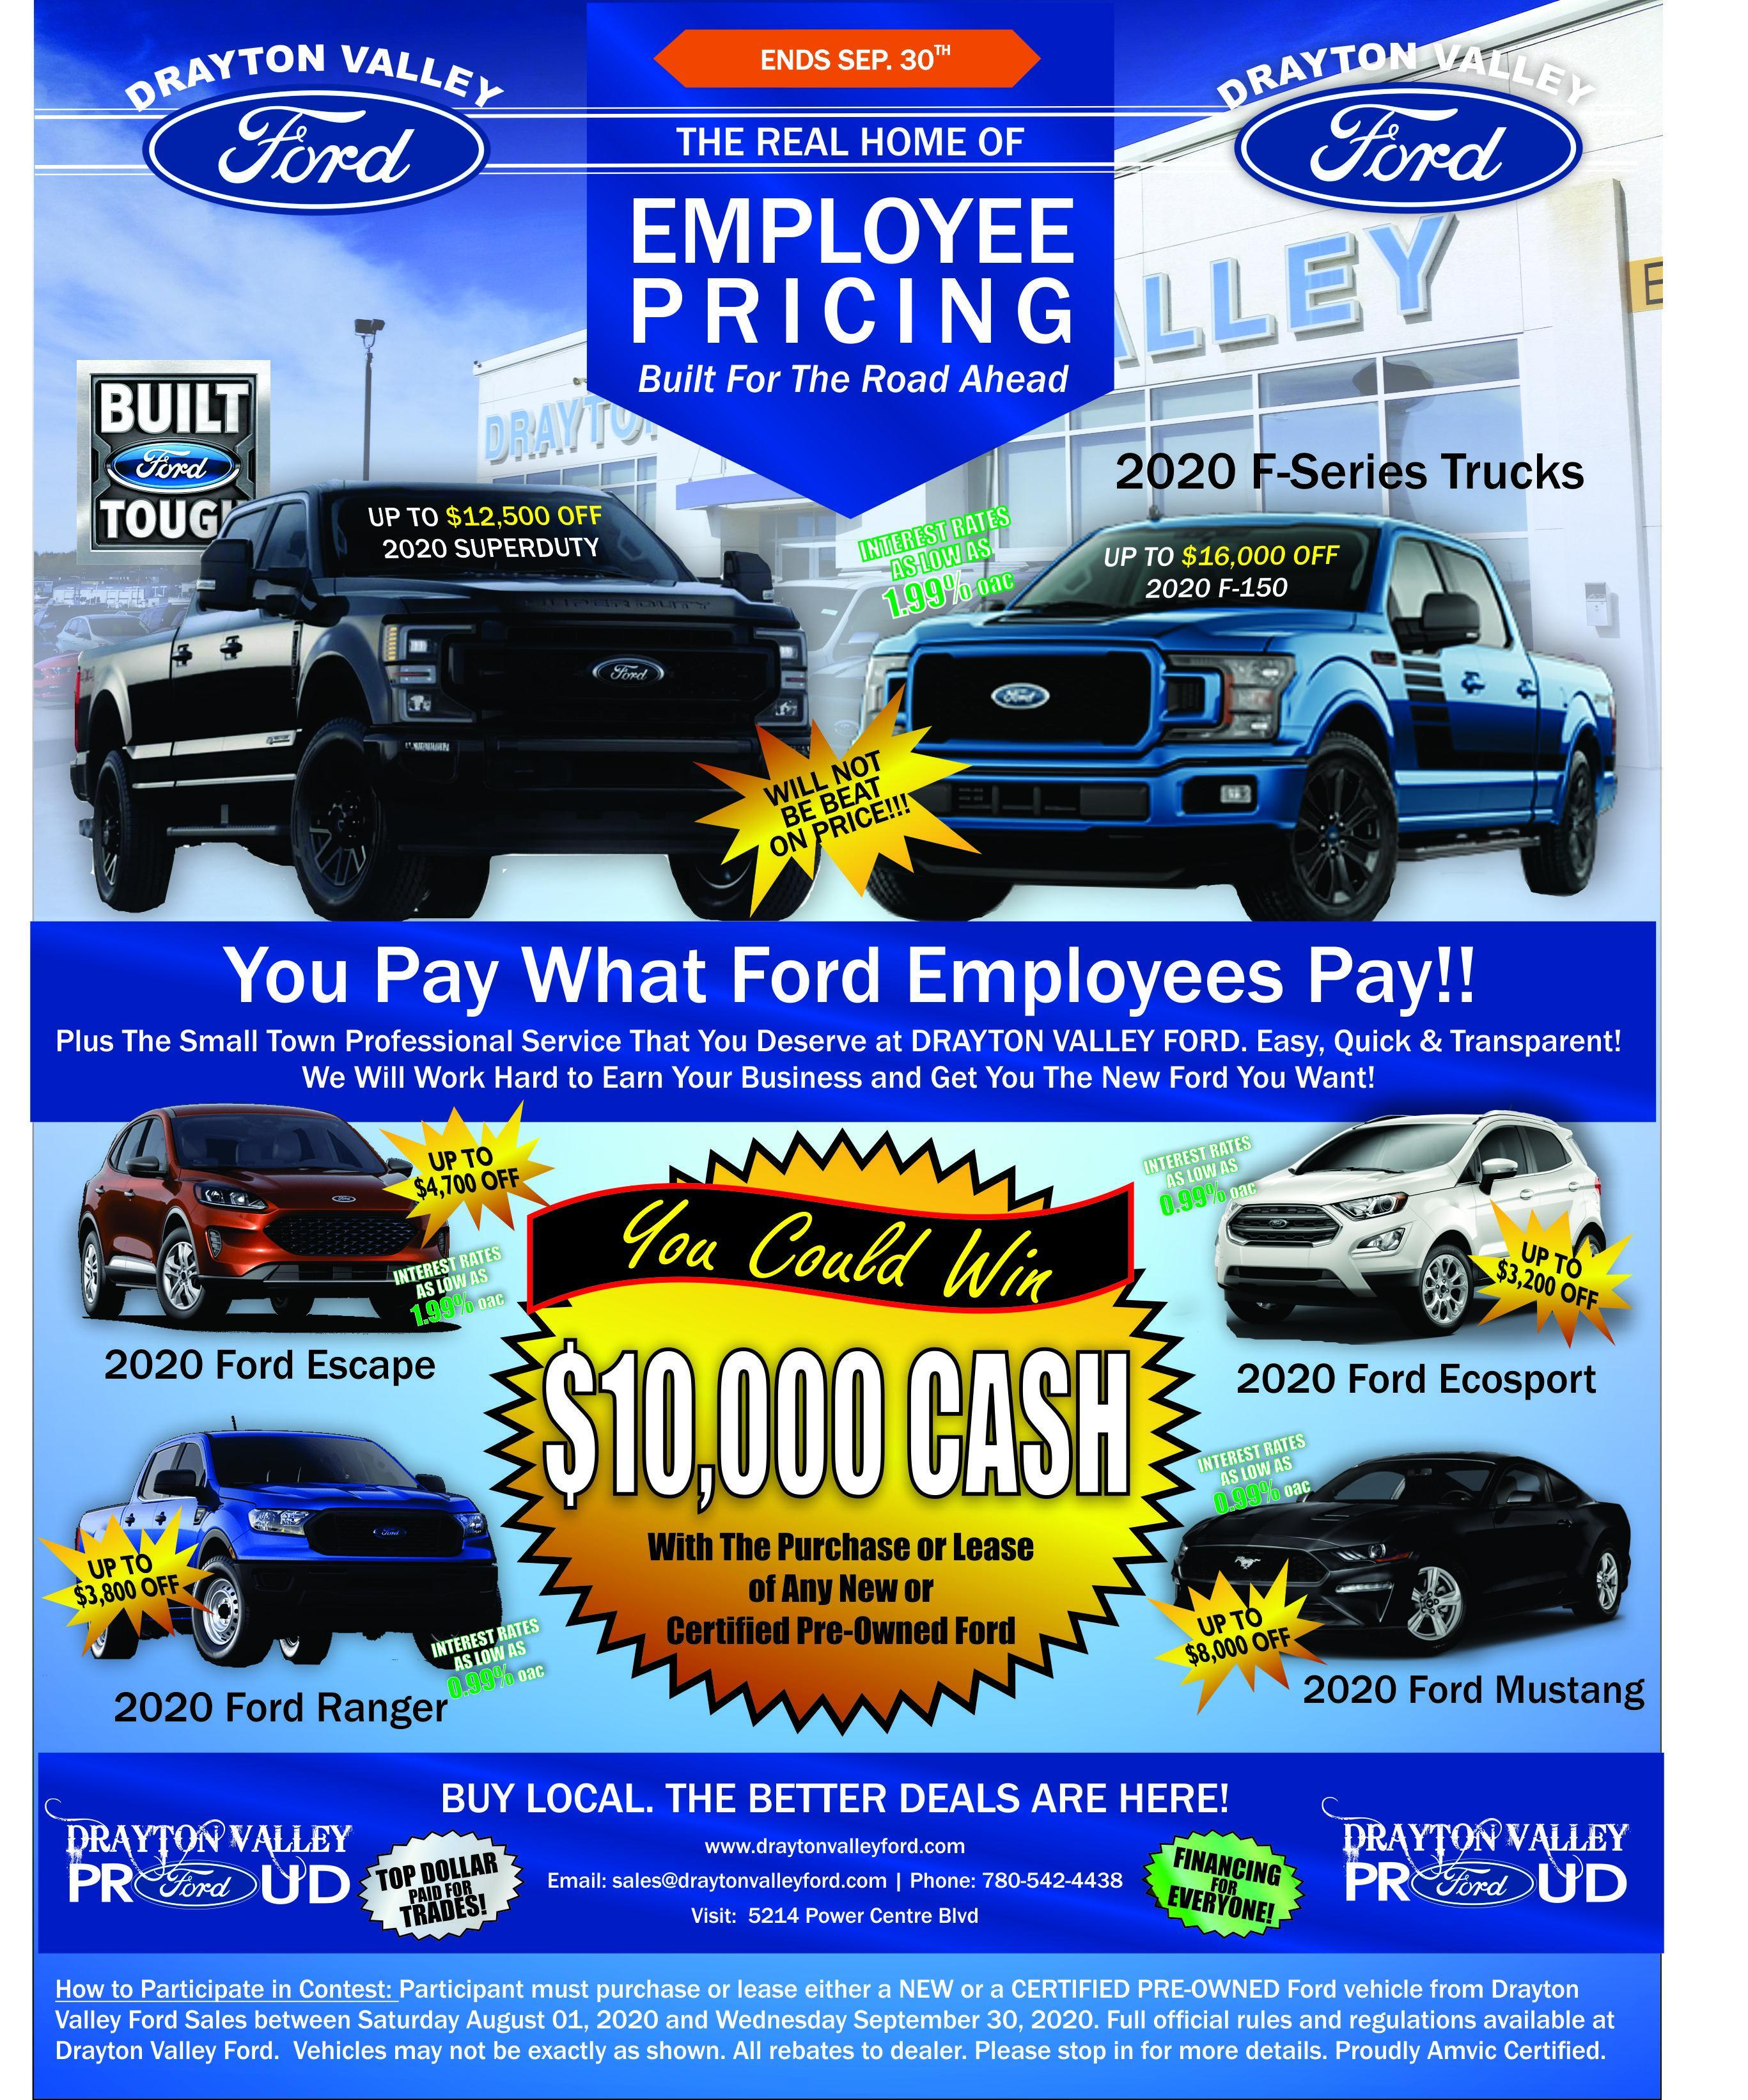 ford employee pricing at drayton valley ford